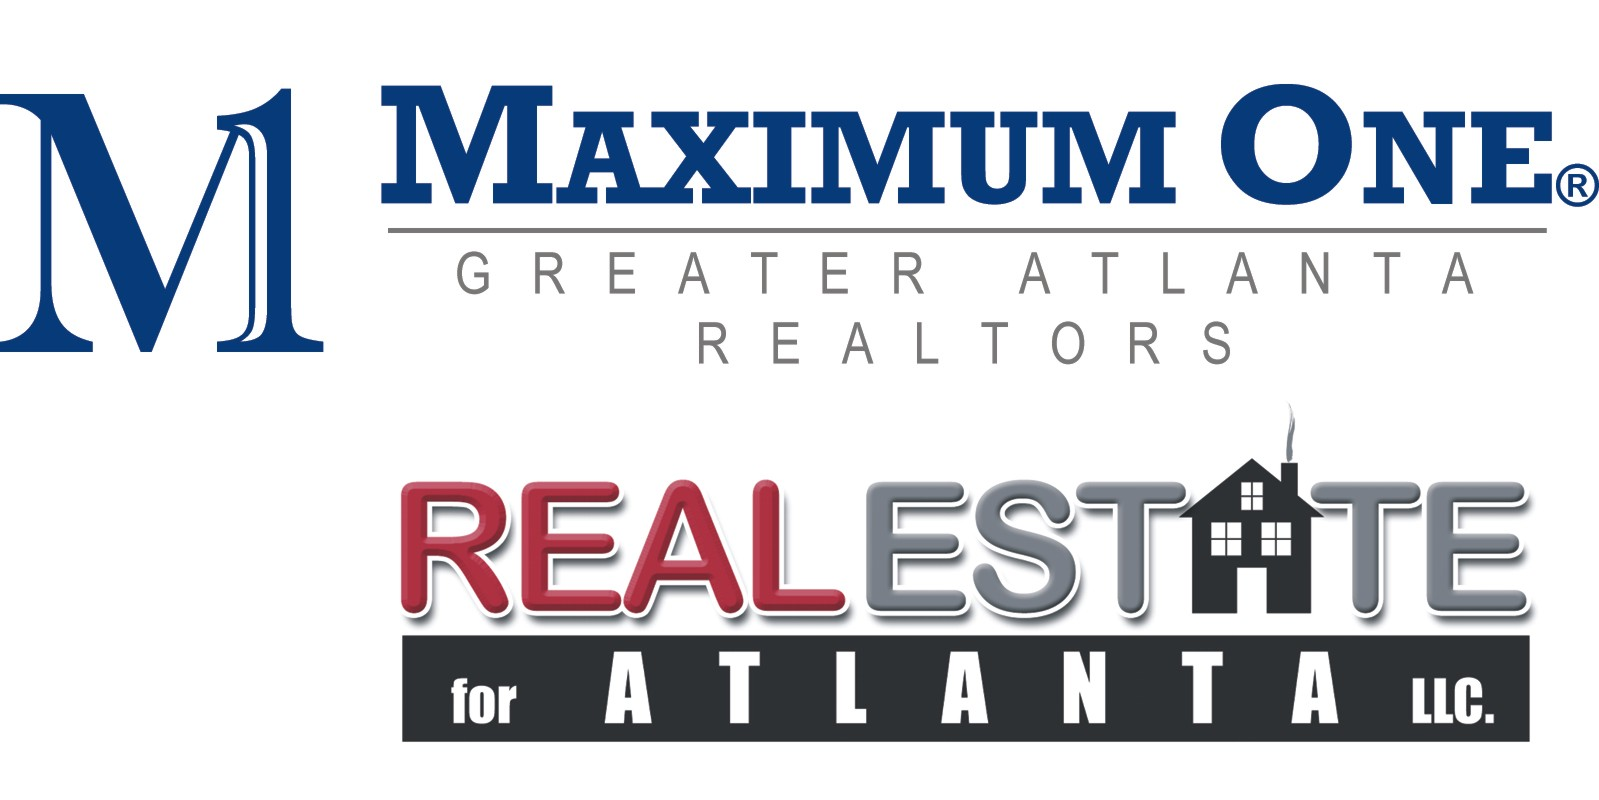 Assoc. Broker, Maximum One Grtr Atl Realtors